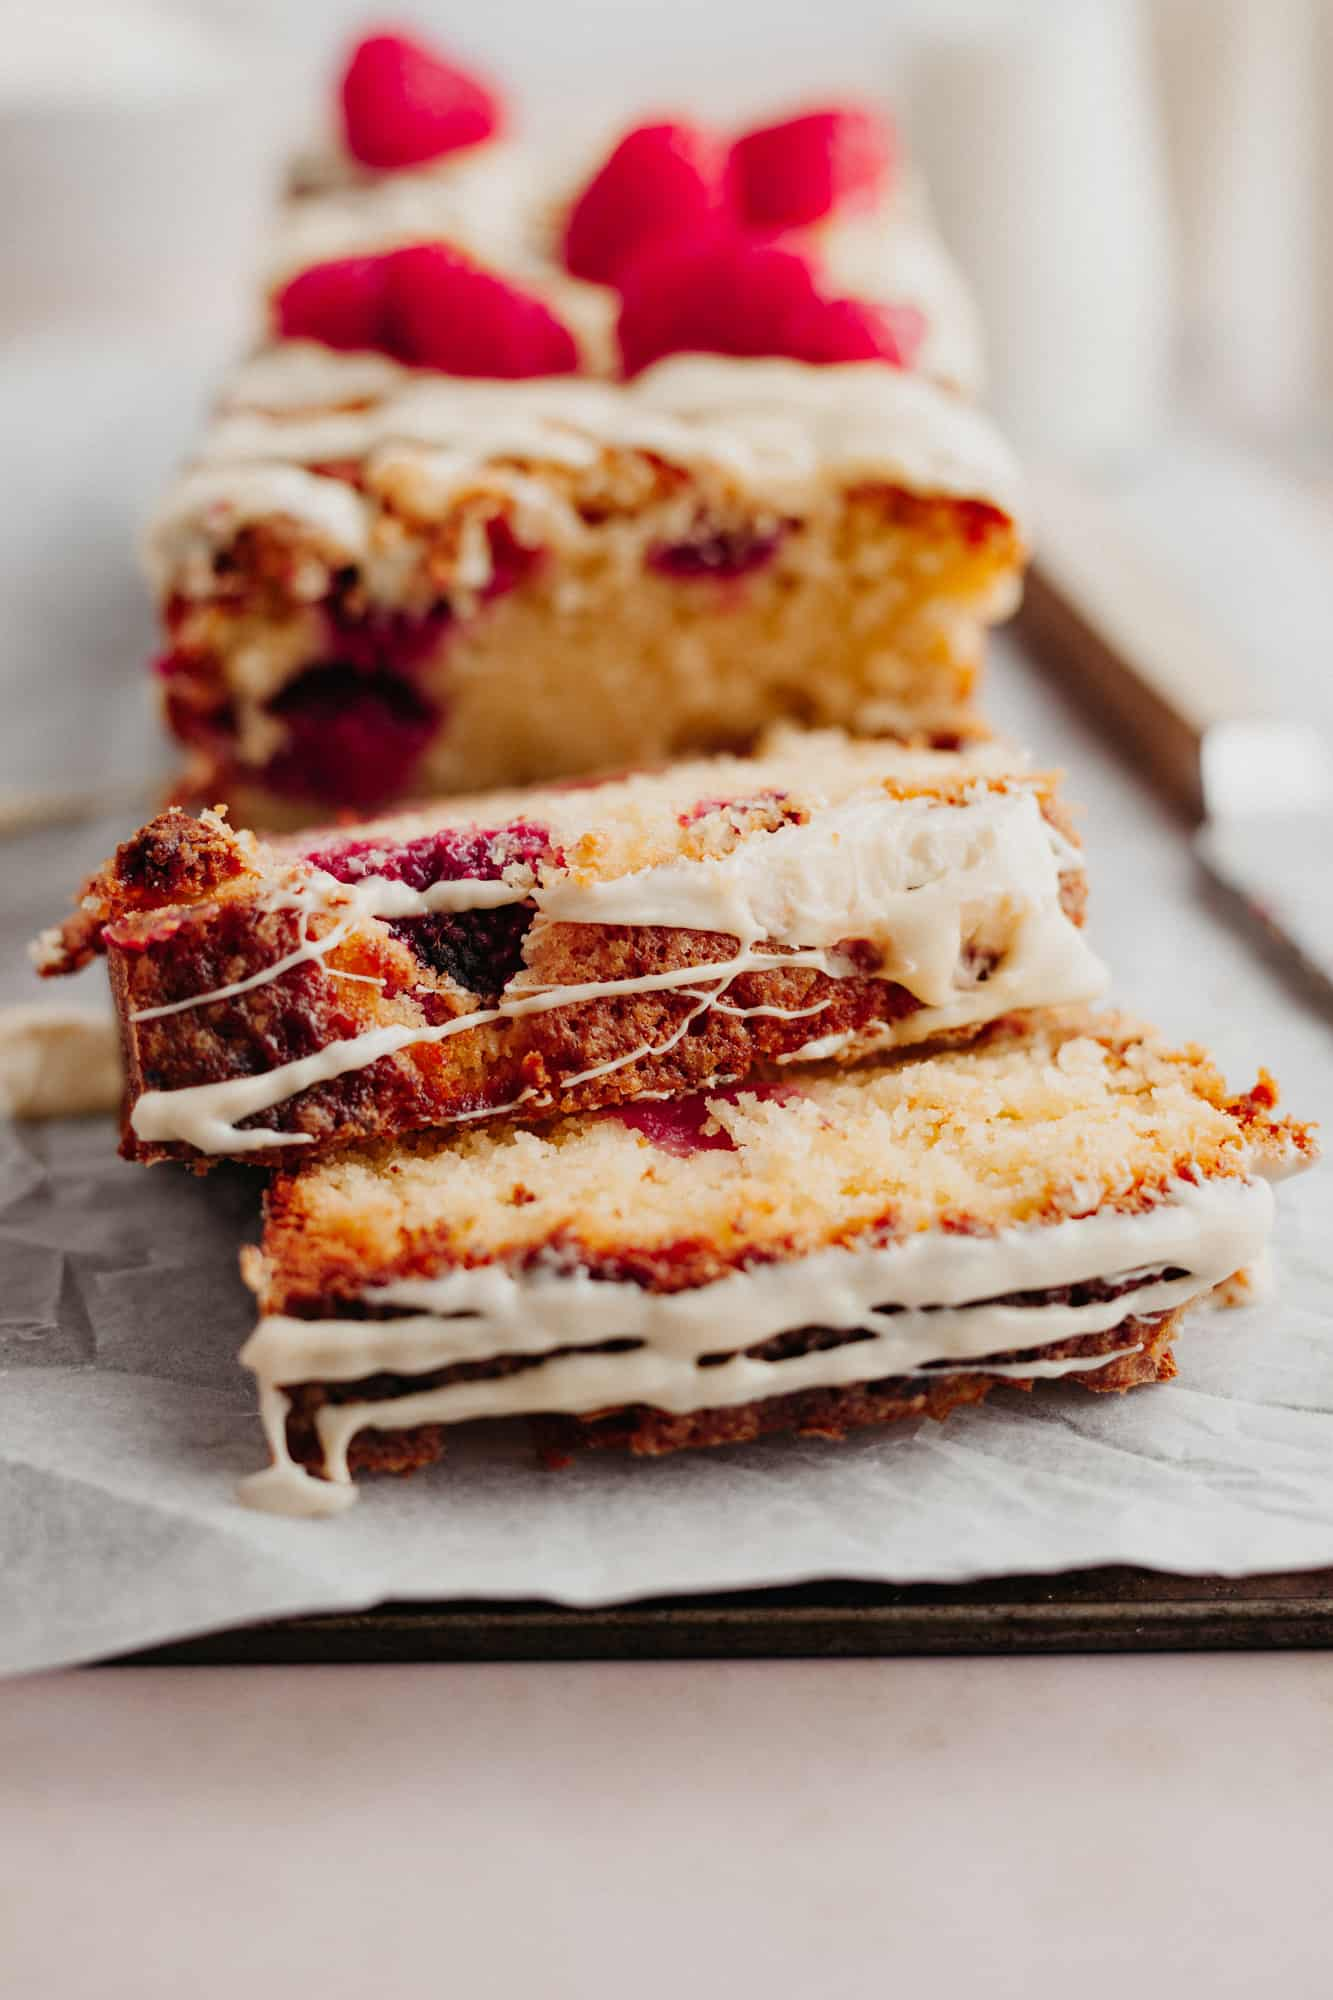 Two slices of a raspberry white chocolate loaf that have been cut.